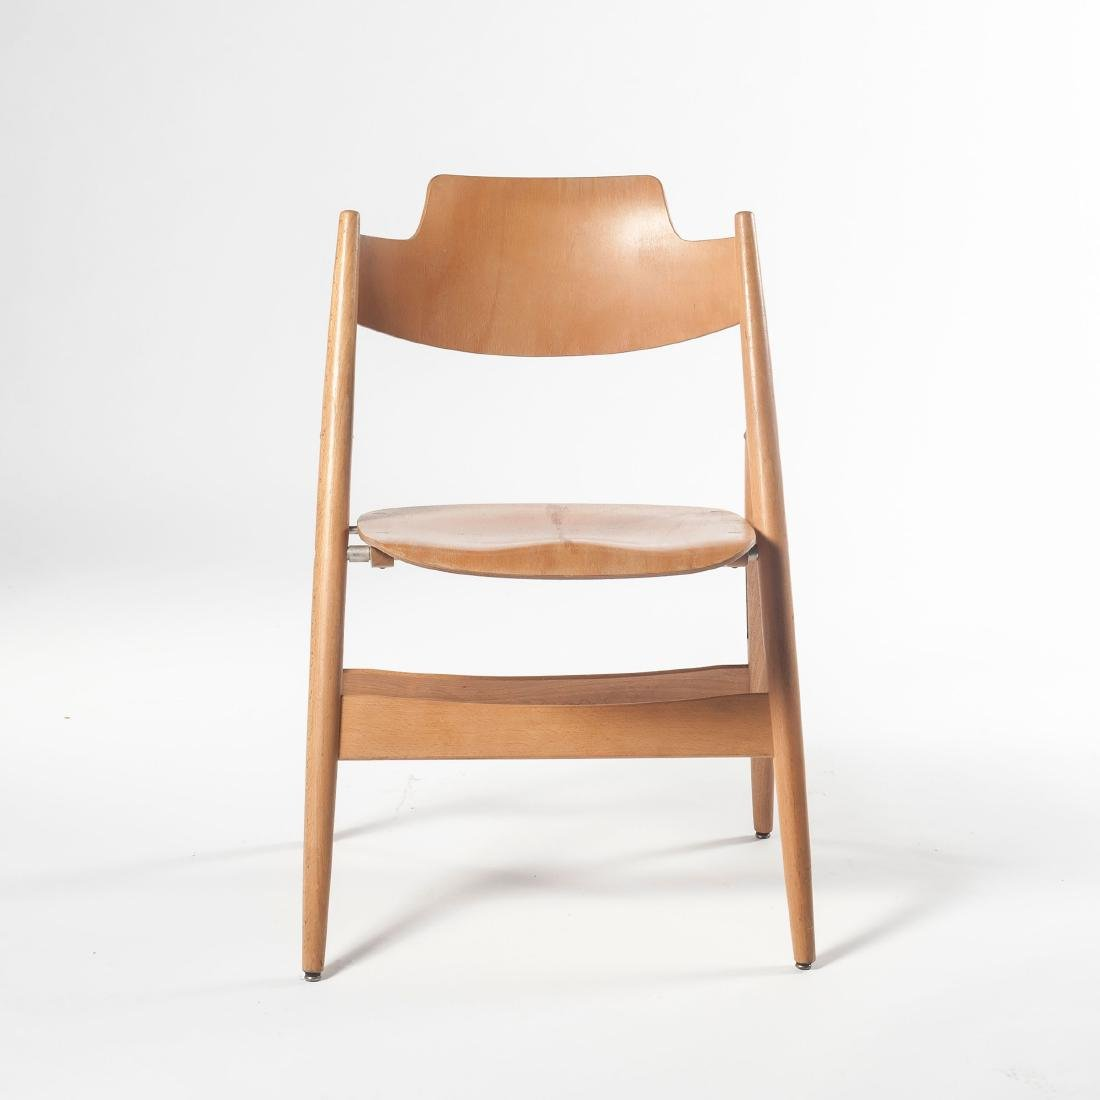 Six 'SE 18' folding chairs, 1953 - 4